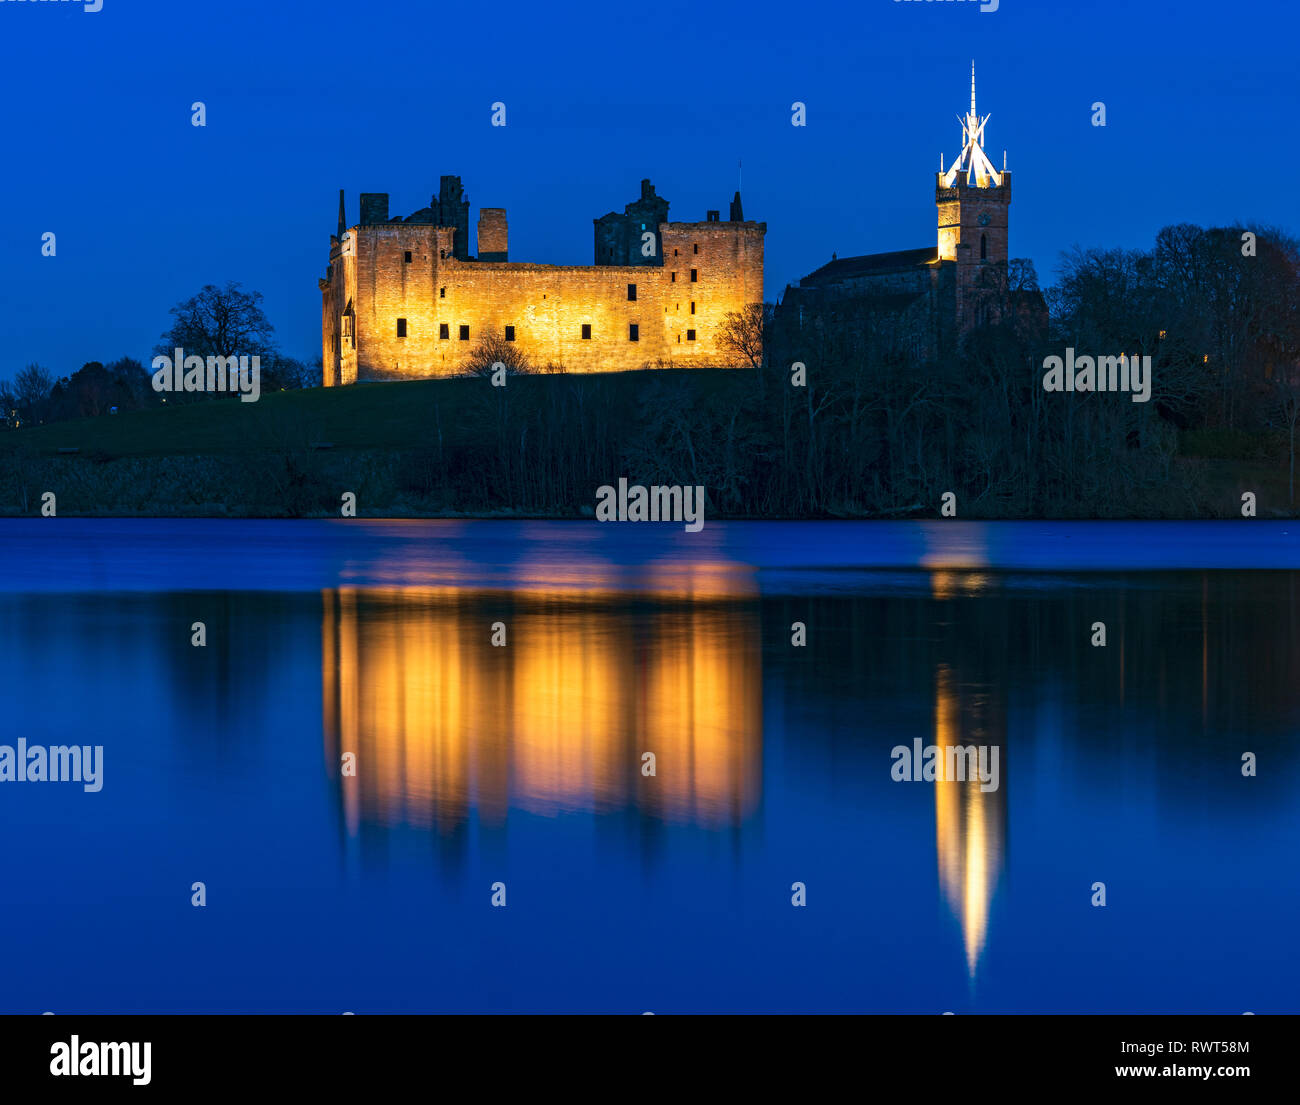 View of Linlithgow Palace at night in Linlithgow, West Lothian, Scotland, UK. Birthplace of Mary Queen of Scots. Stock Photo